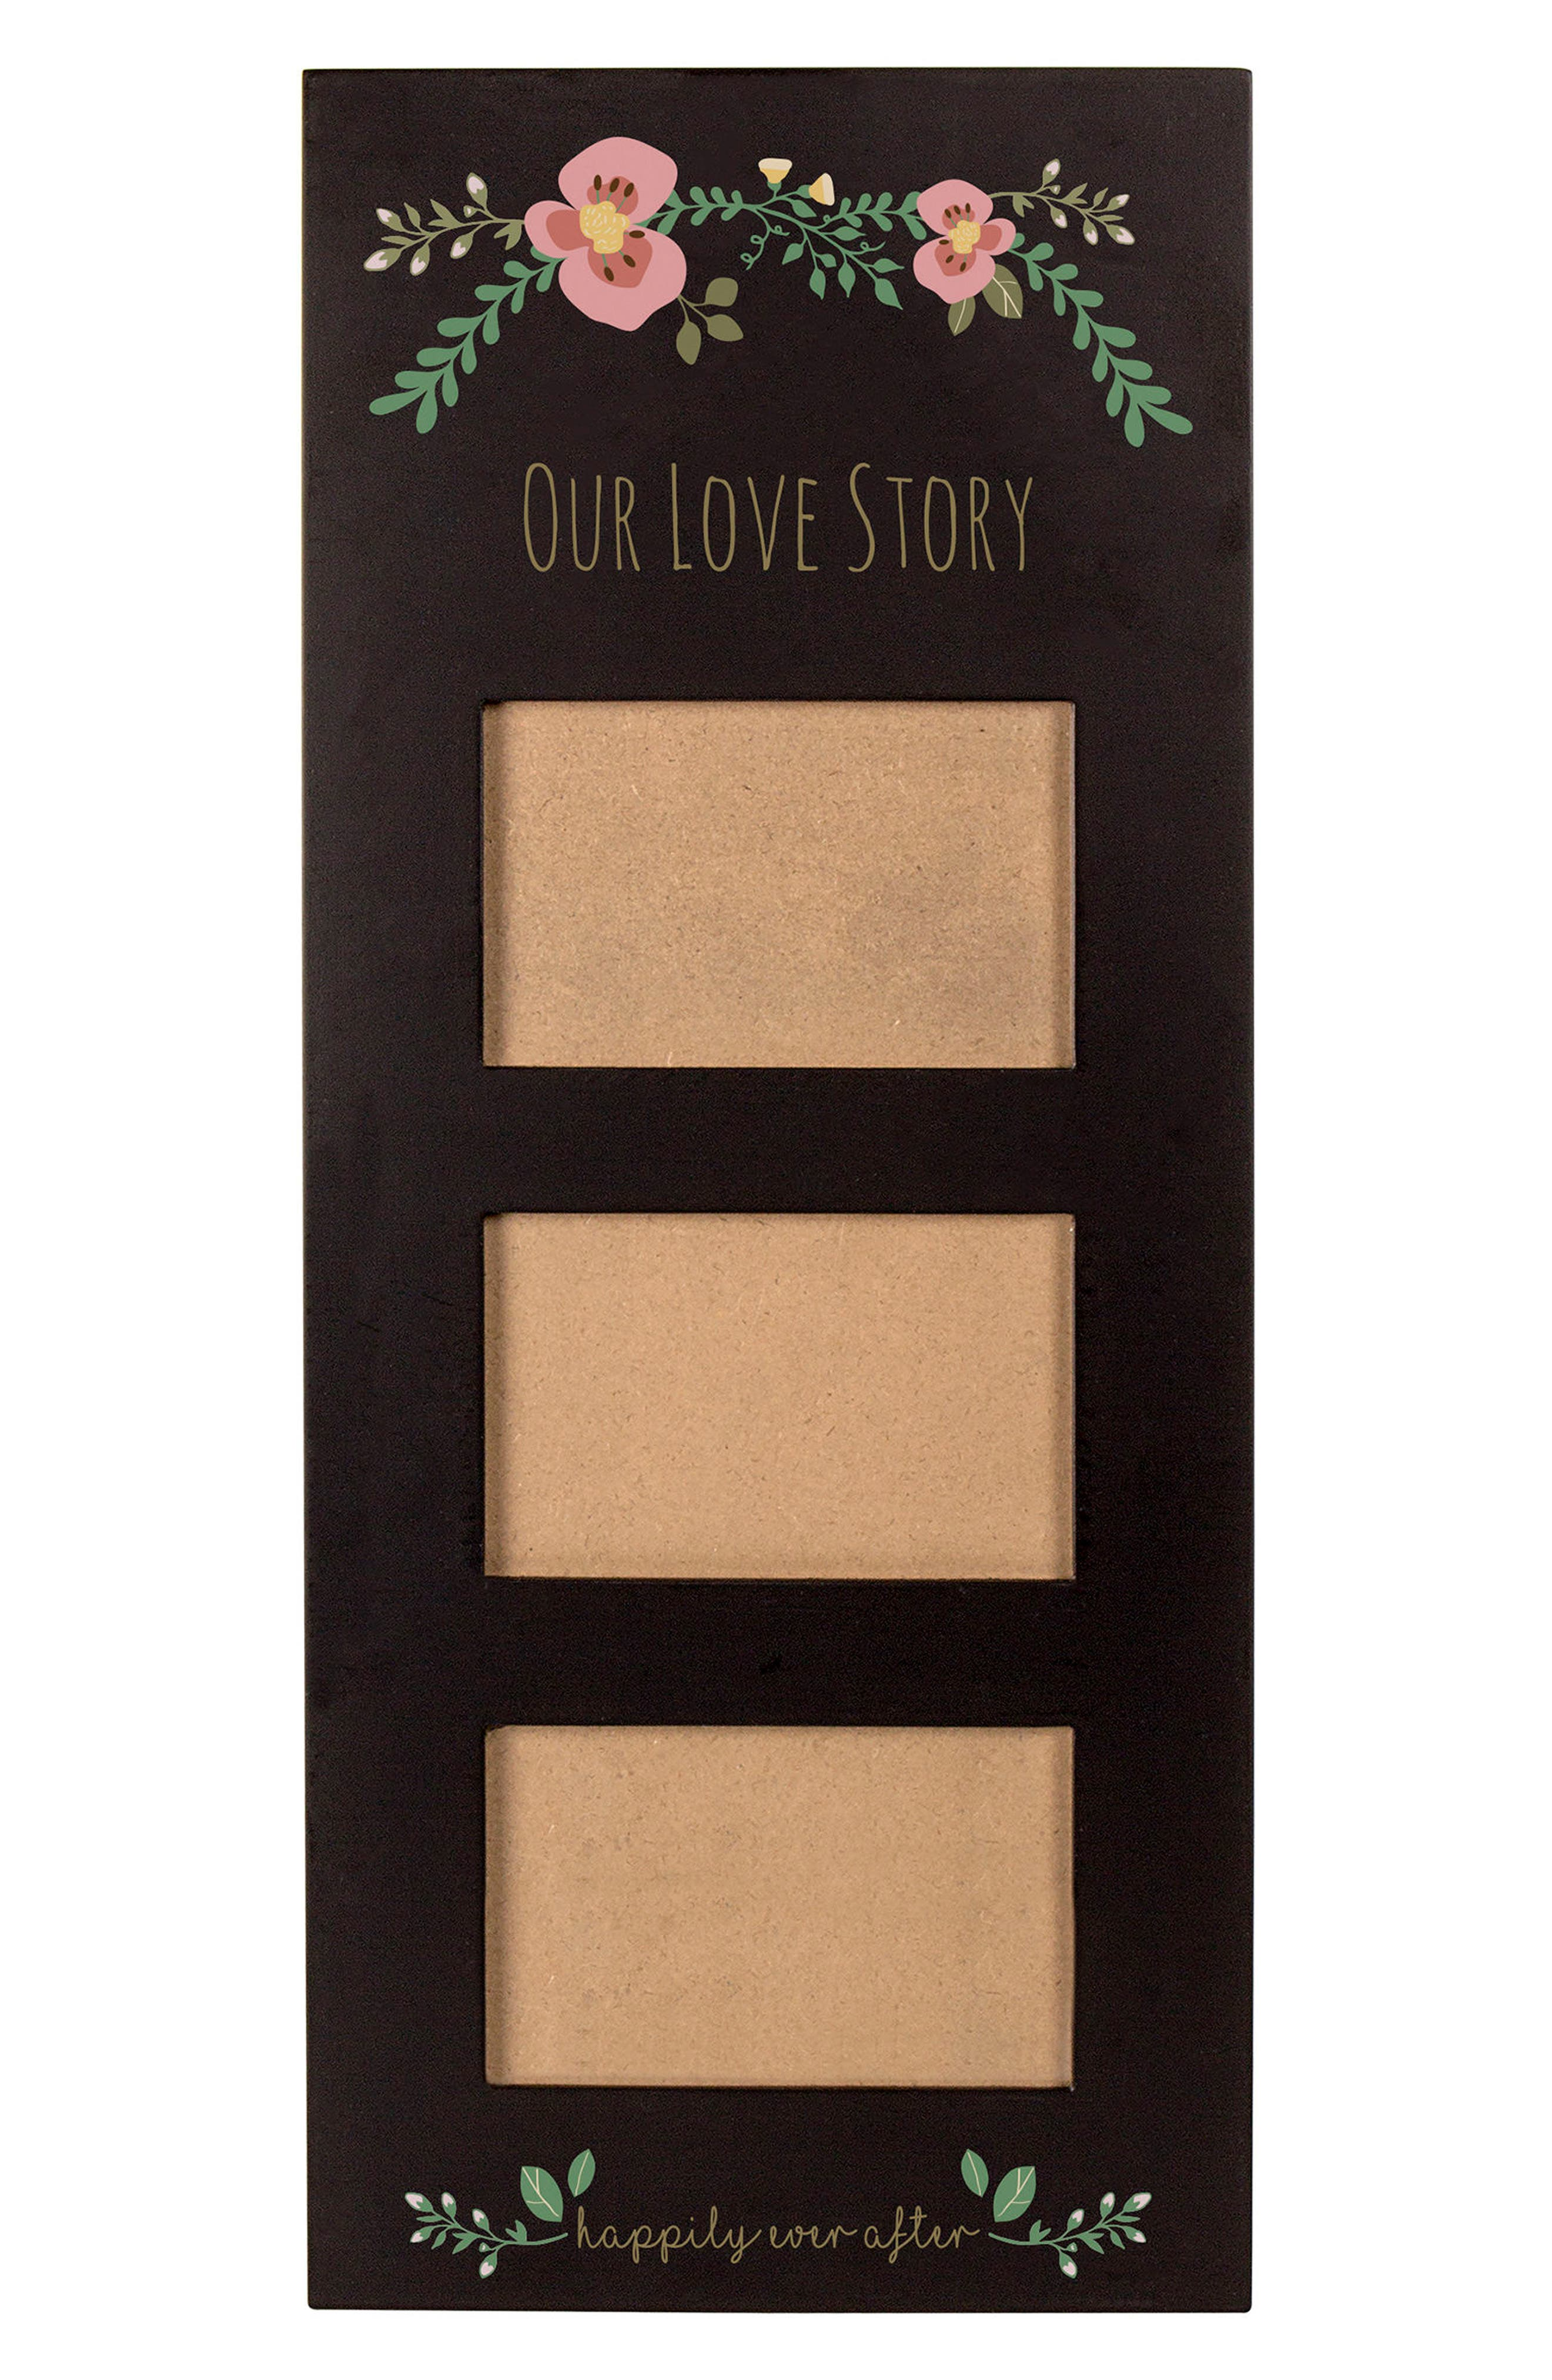 Floral Love Story 3-Window Picture Frame,                             Main thumbnail 1, color,                             001